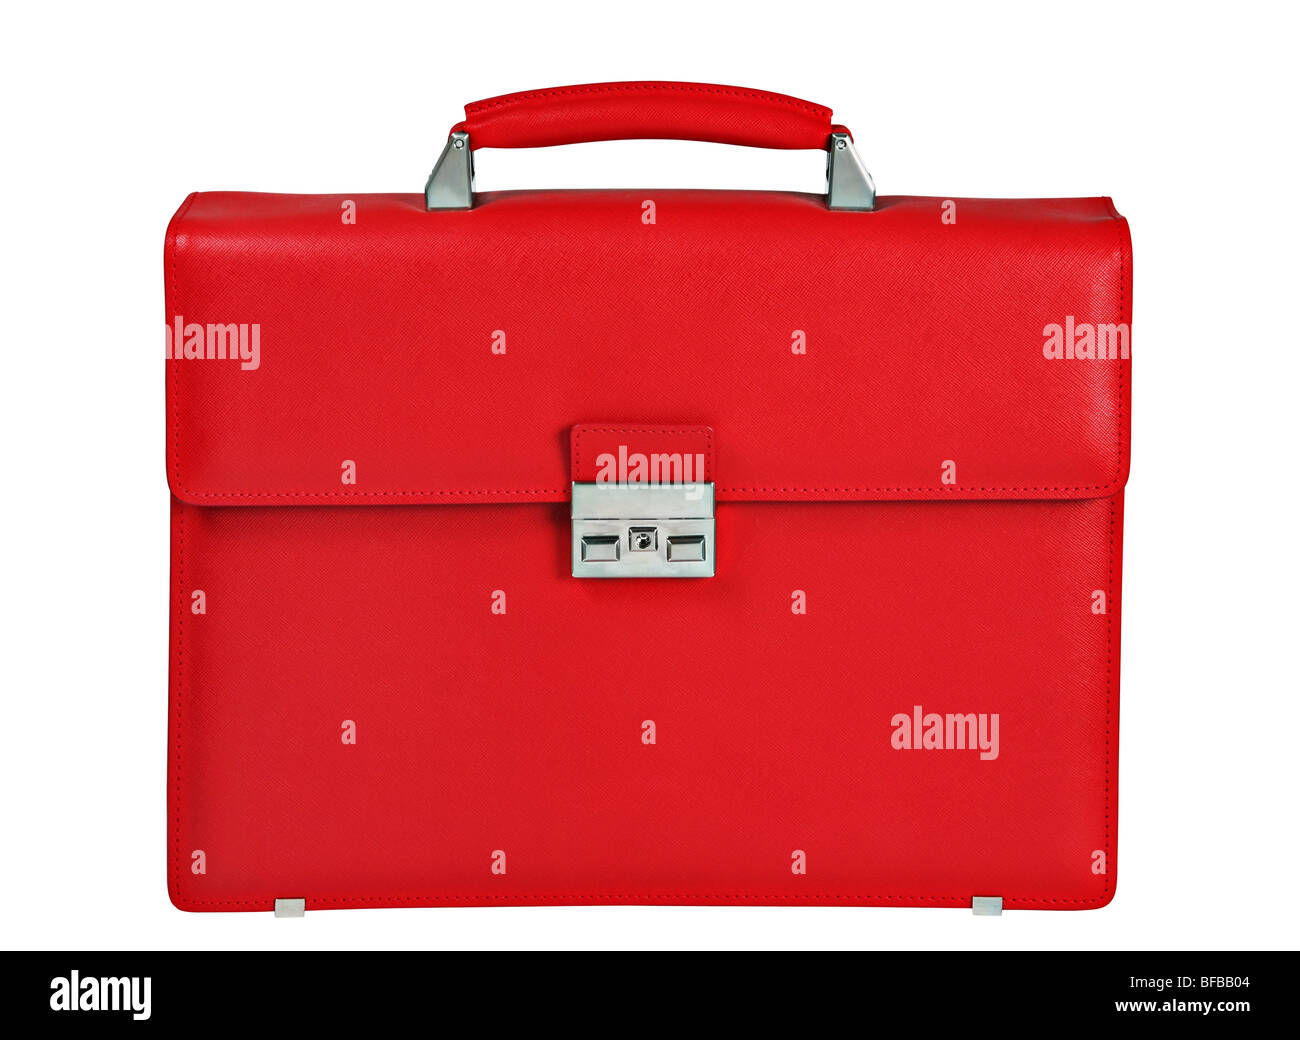 Red briefcase detail on white background - Stock Image